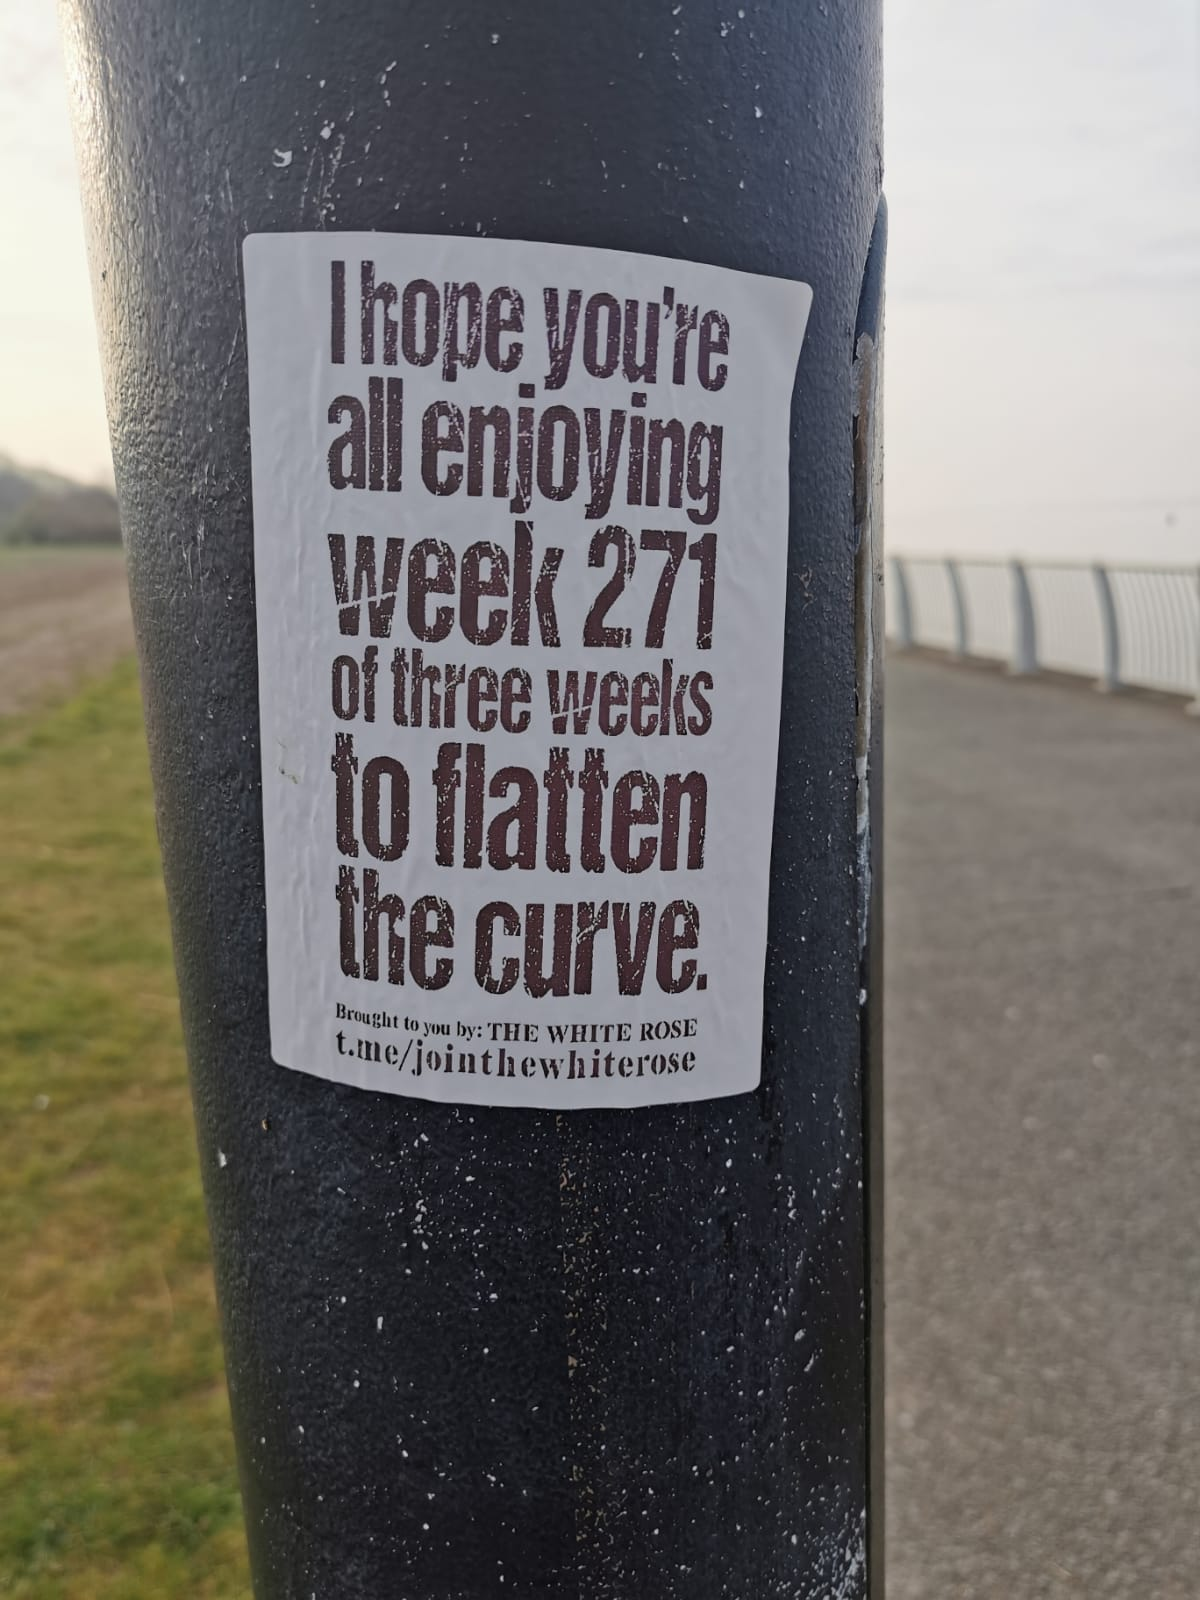 """Sticker on a lamppost: """"I hope you're enjoying week 271 of three weeks to flatten the curve"""" - black text on a white background"""